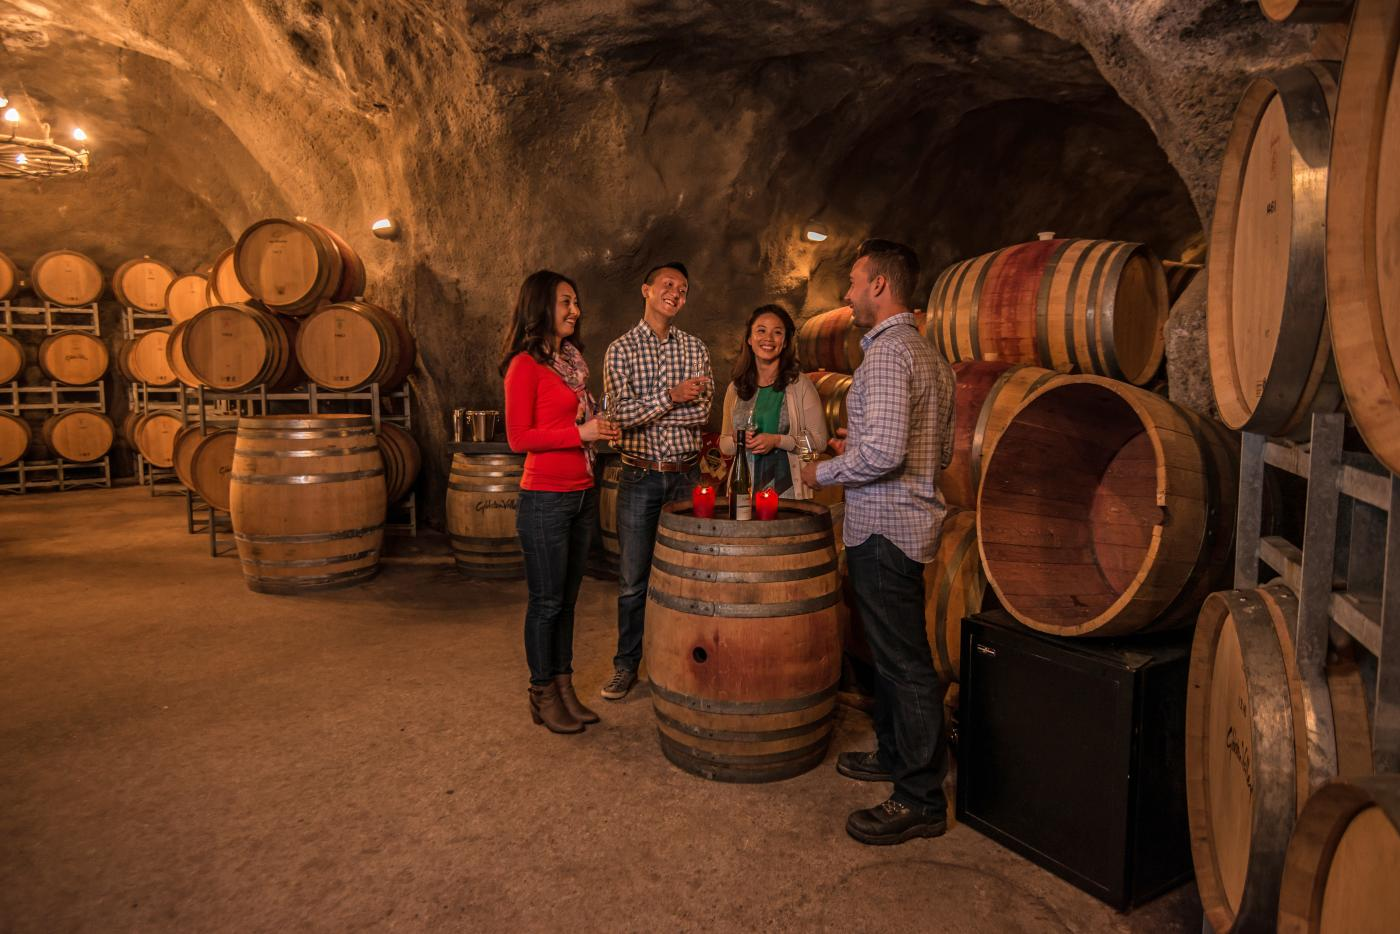 Wine tasting in the Wine Cave at Gibbston Valley Winery